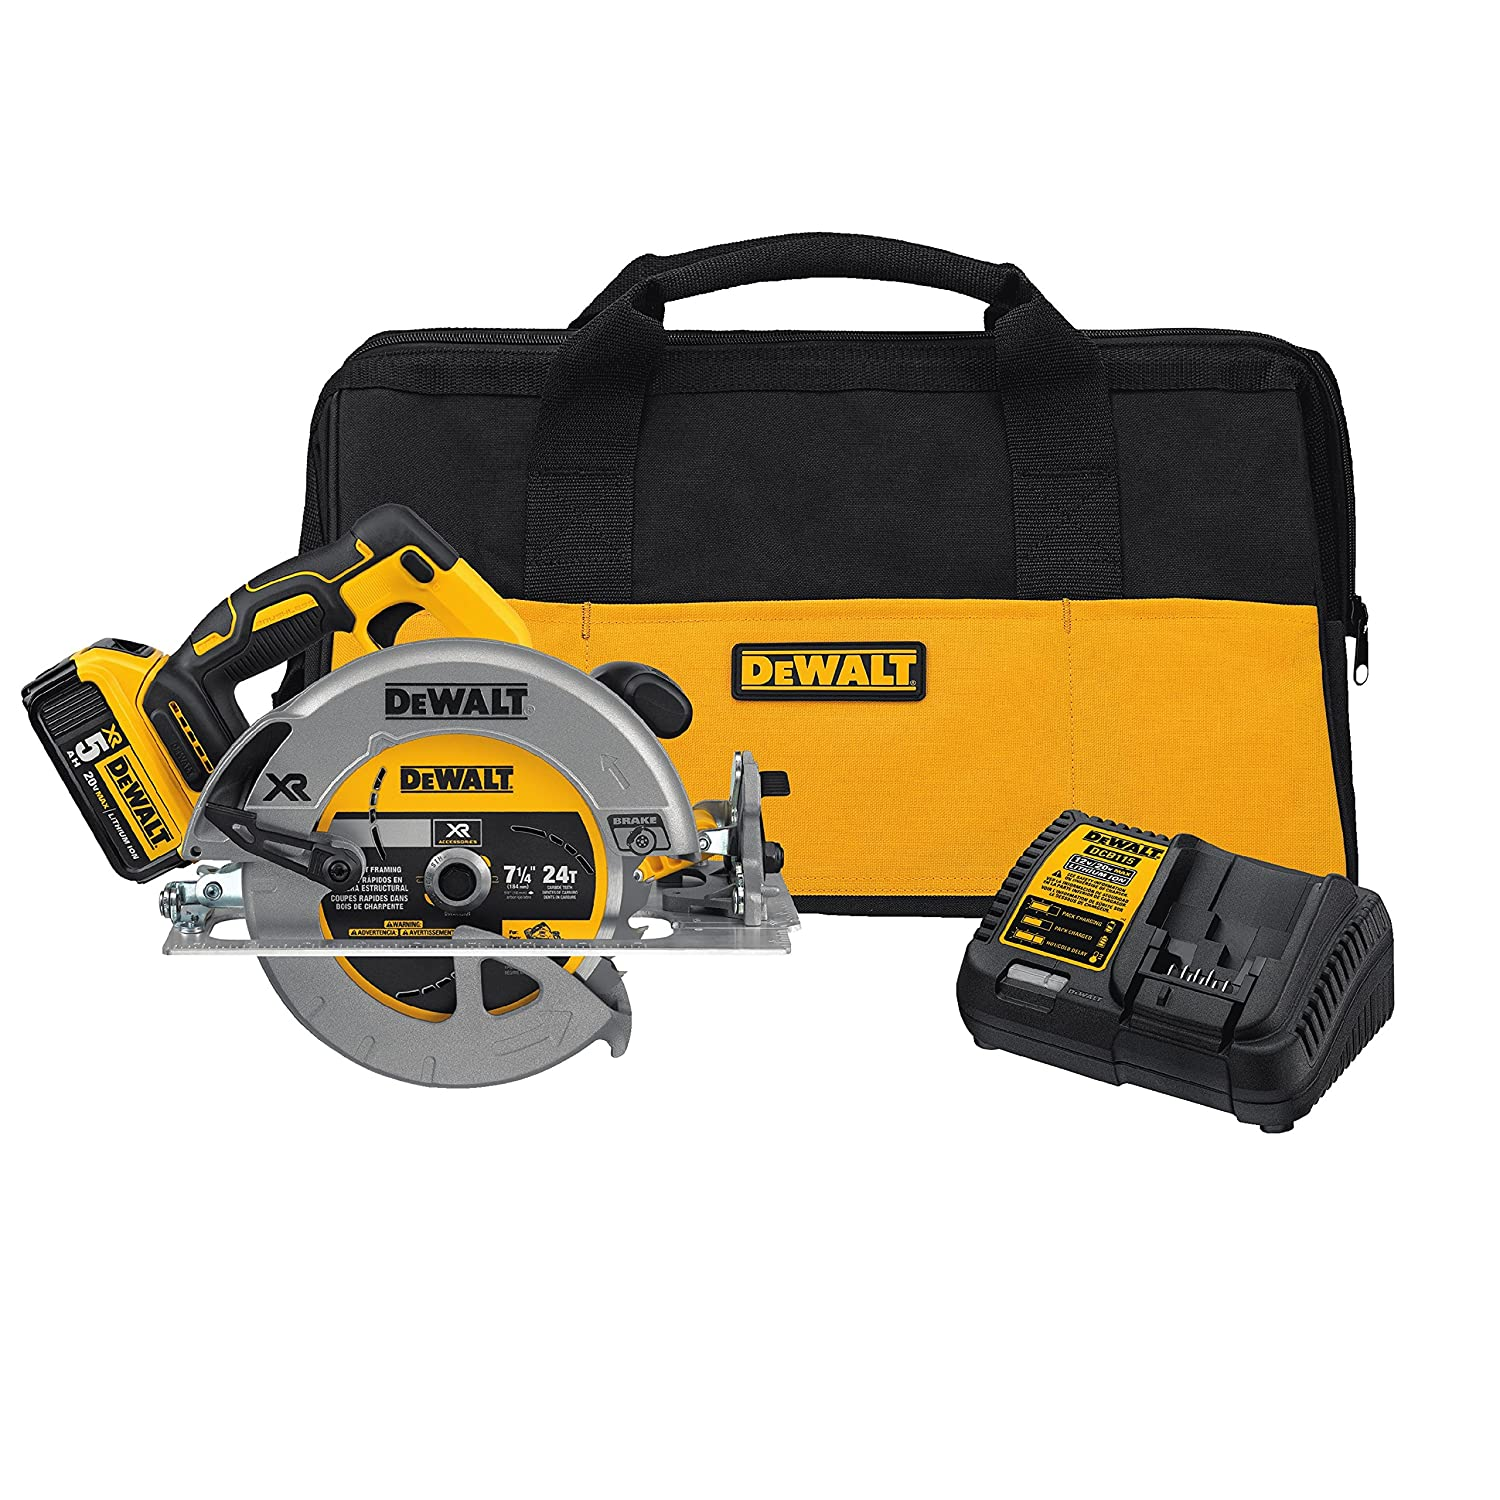 "DEWALT DCS570P1 7-1/4"" (184mm) 20V Cordless Circular Saw with Brake Kit"